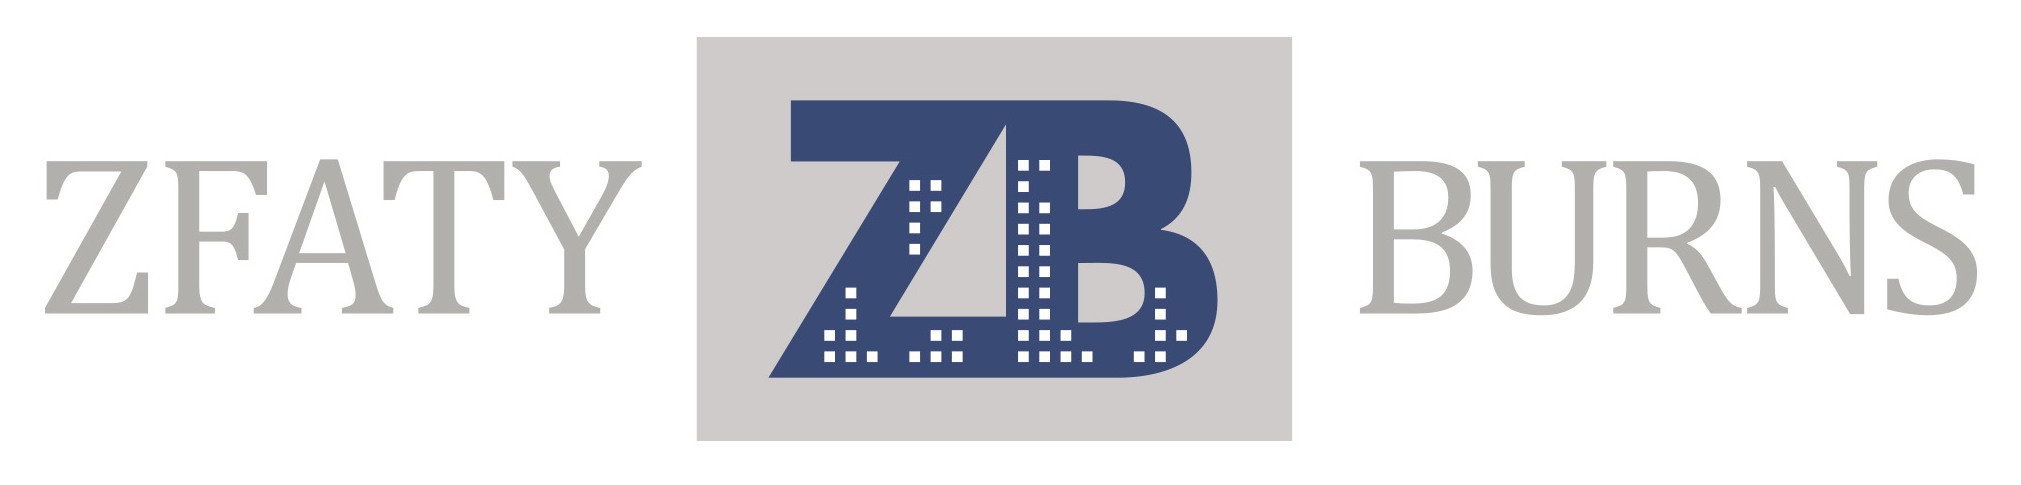 474-2_ZB logo for MenAlive.png